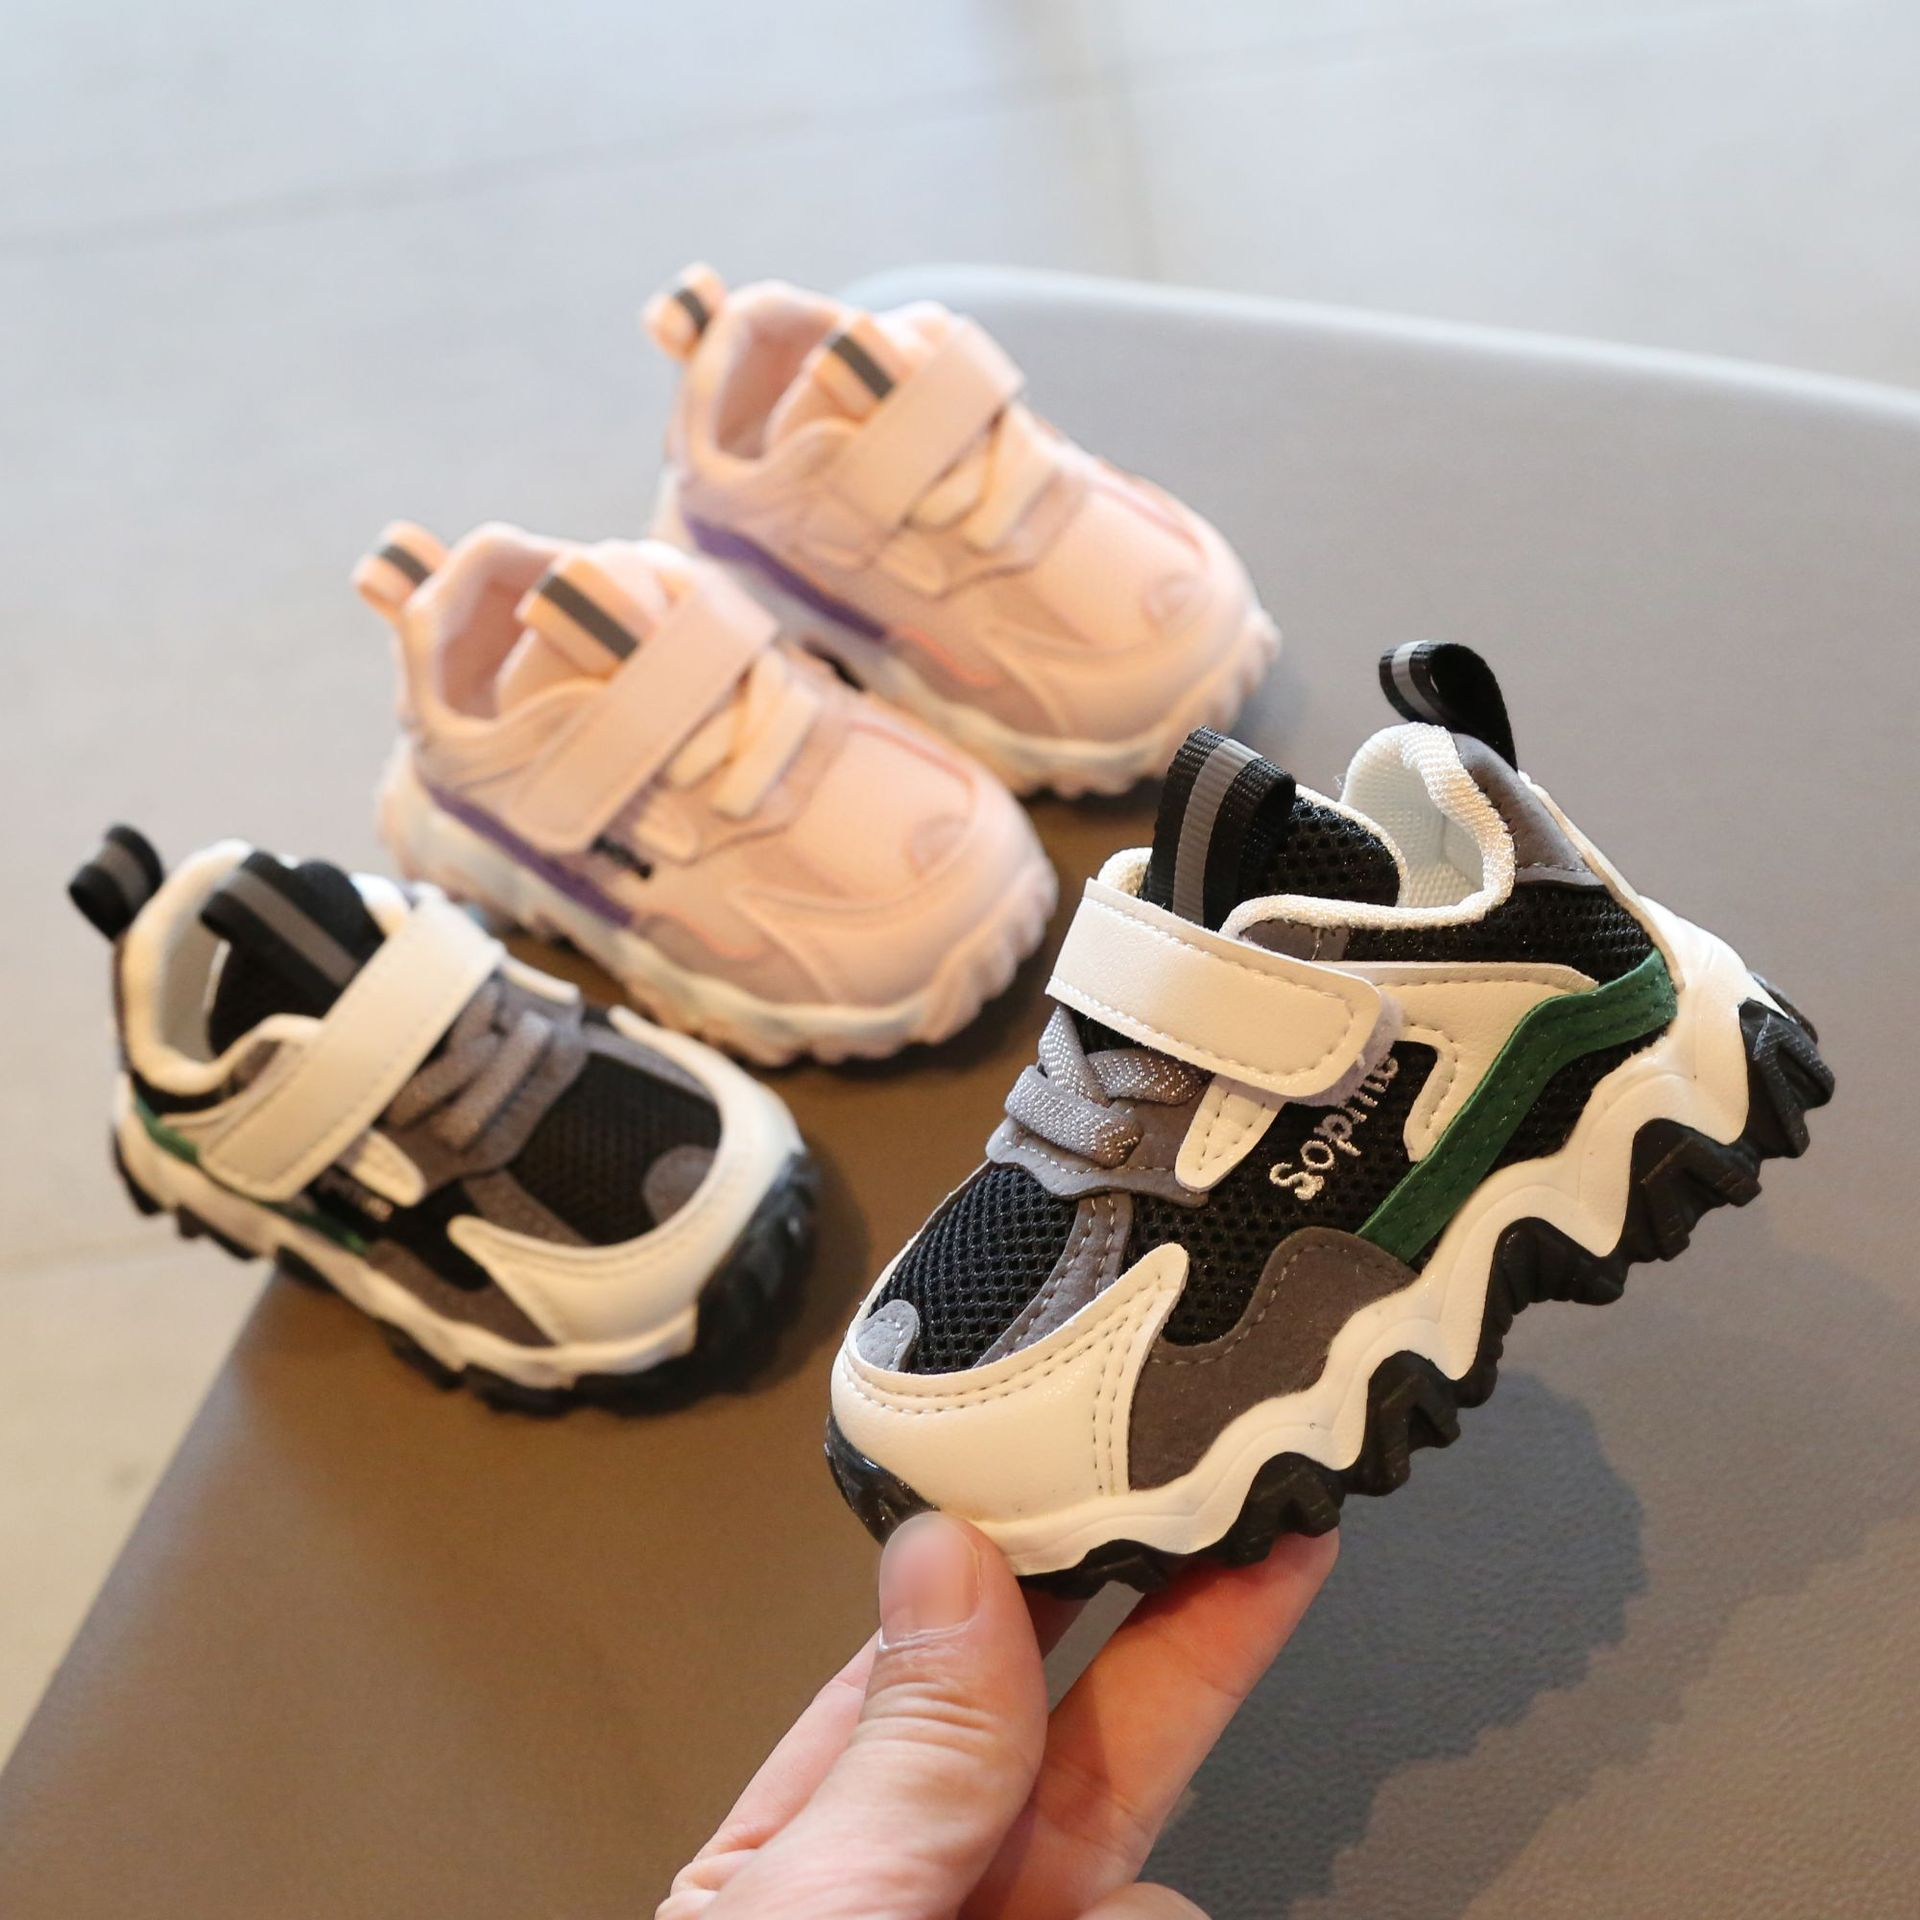 New Baby Boy Sport Shoes Breathable Baby Girls Sneakers Infant Toddler First Walkers Children's Tennis Shoes